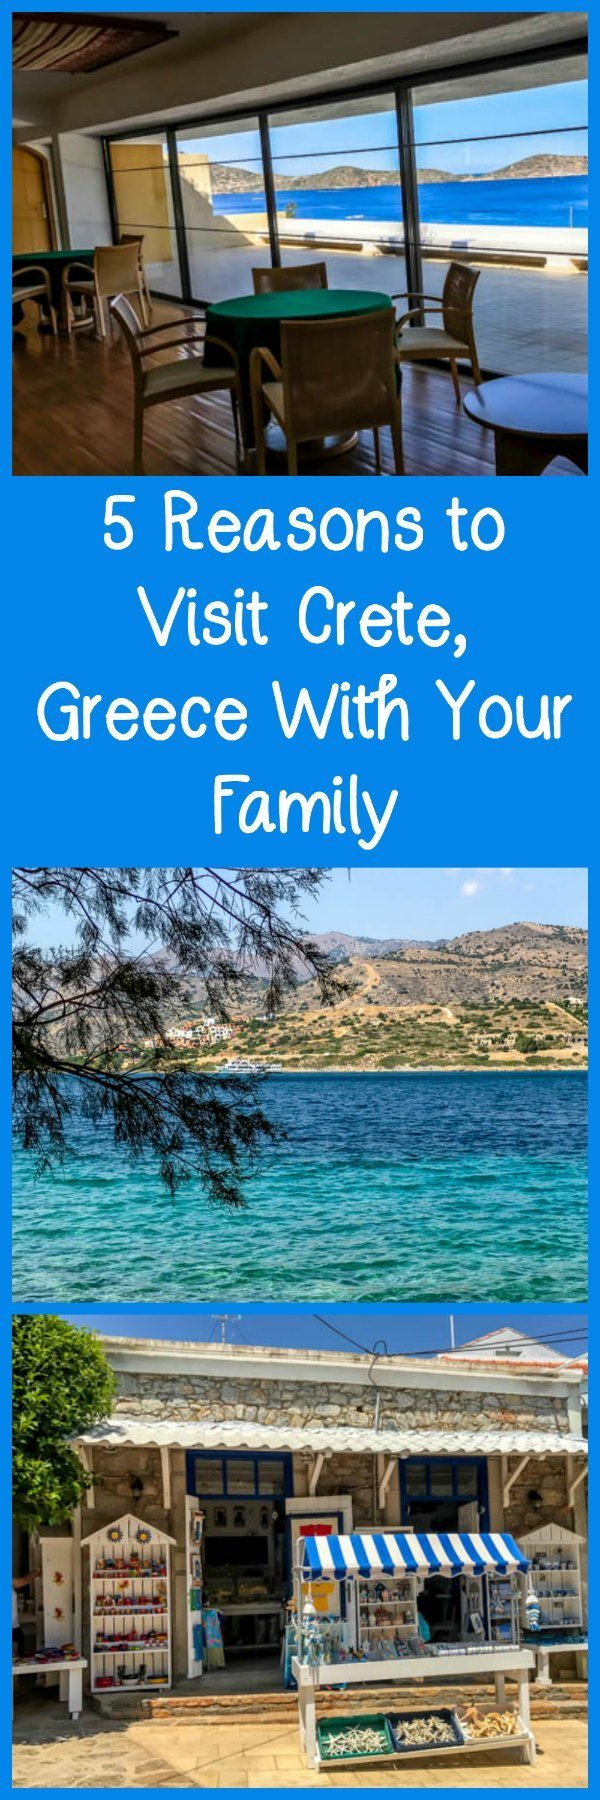 Reasons to visit Crete Greece with your family, including quaint shops, delicious restaurants, gorgeous water, and luxurious resorts.